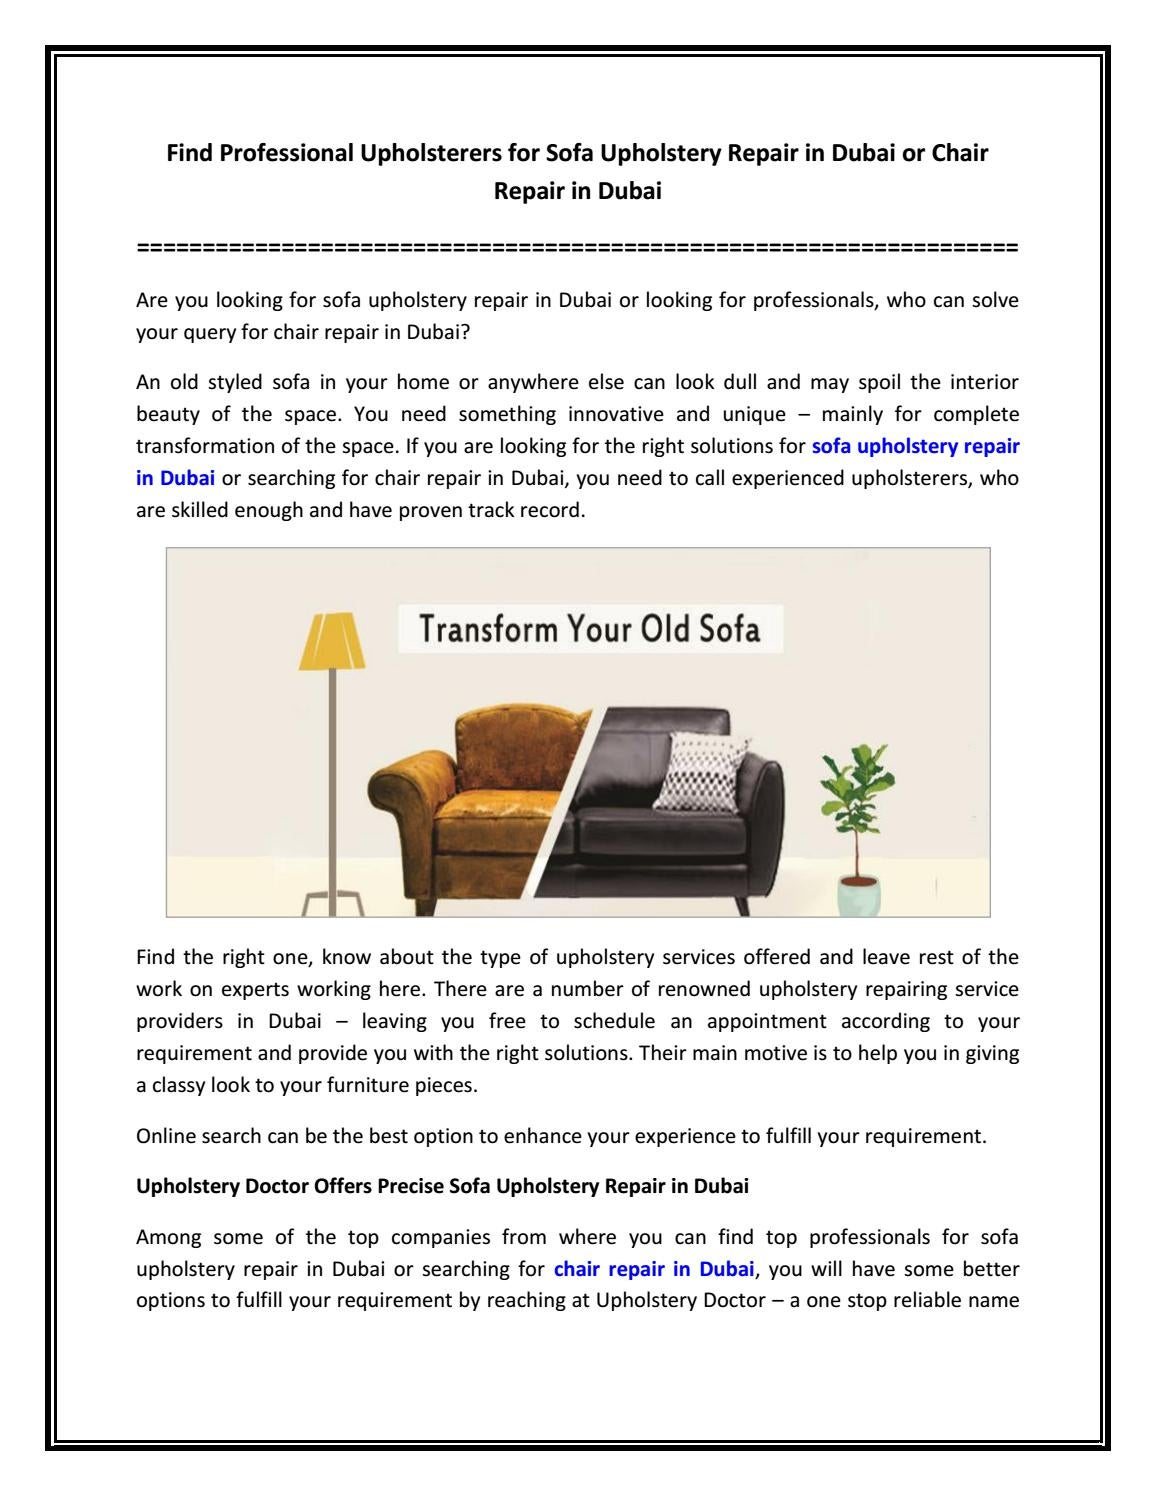 Find Professional Upholsterers For Sofa Upholstery Repair In Dubai Or Chair Repair In Dubai By Upholstery Doctor Issuu